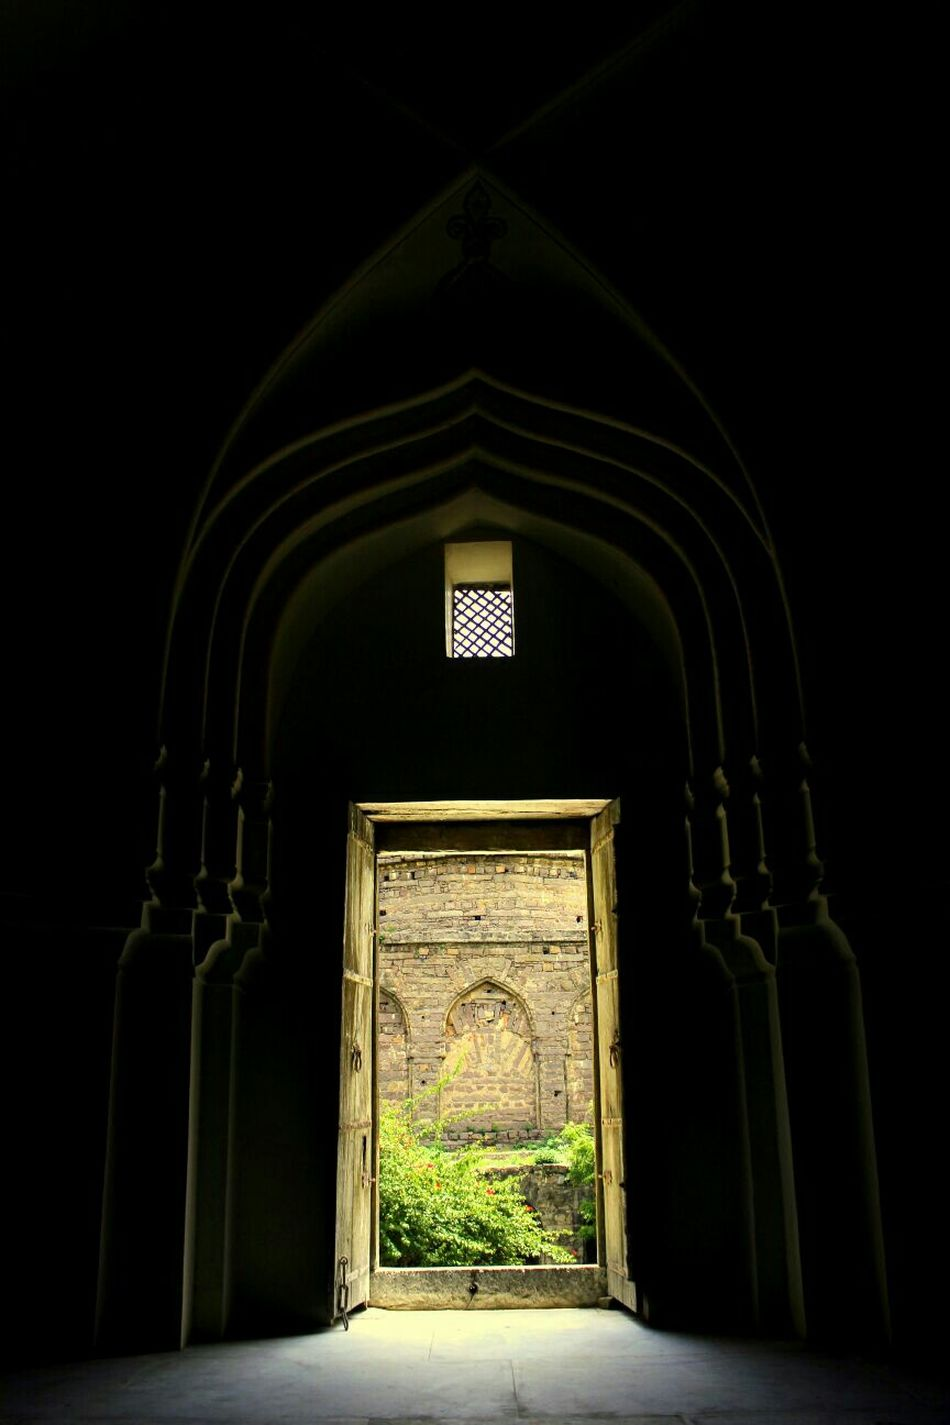 I Love My City The Doorway To A New Beginning Light In The Darkness Soul Of The City Hyderabad India